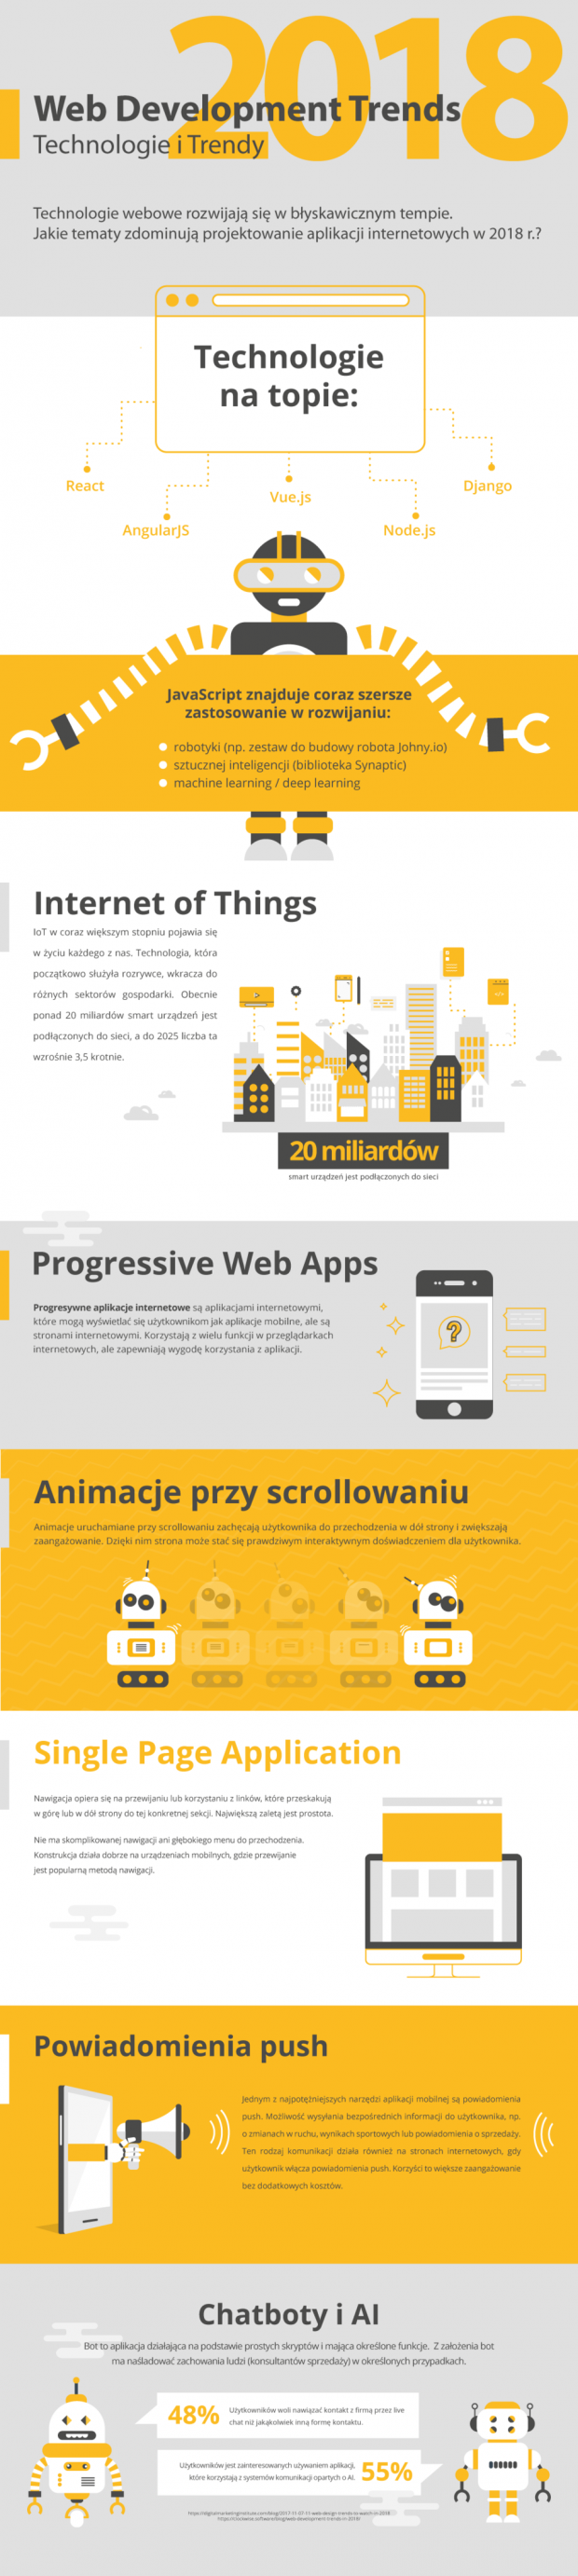 64474_large_infographic_webdevelopmenttrends2018_v00.png